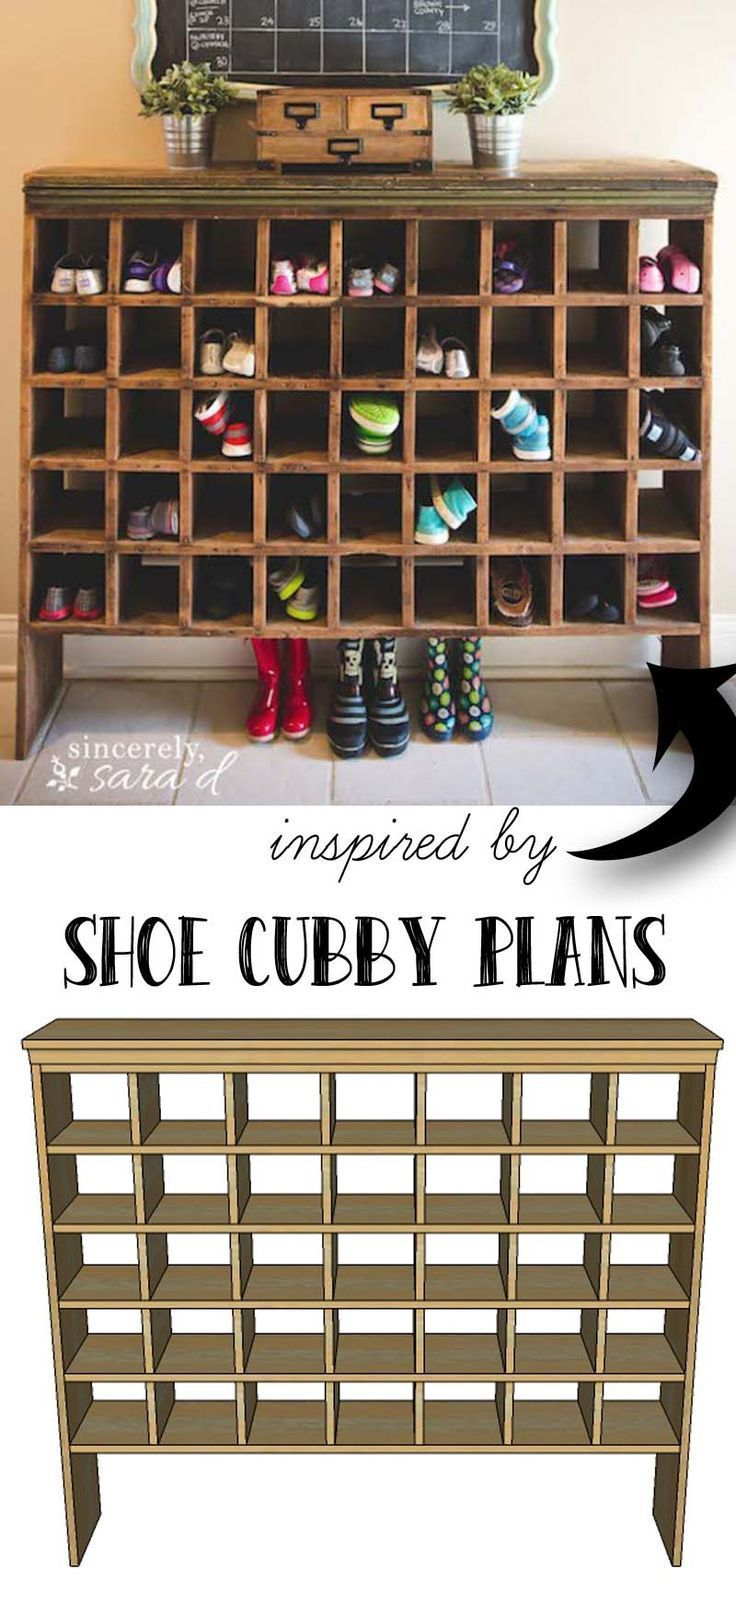 Free building plans for this mail sorter turned shoe cubby.